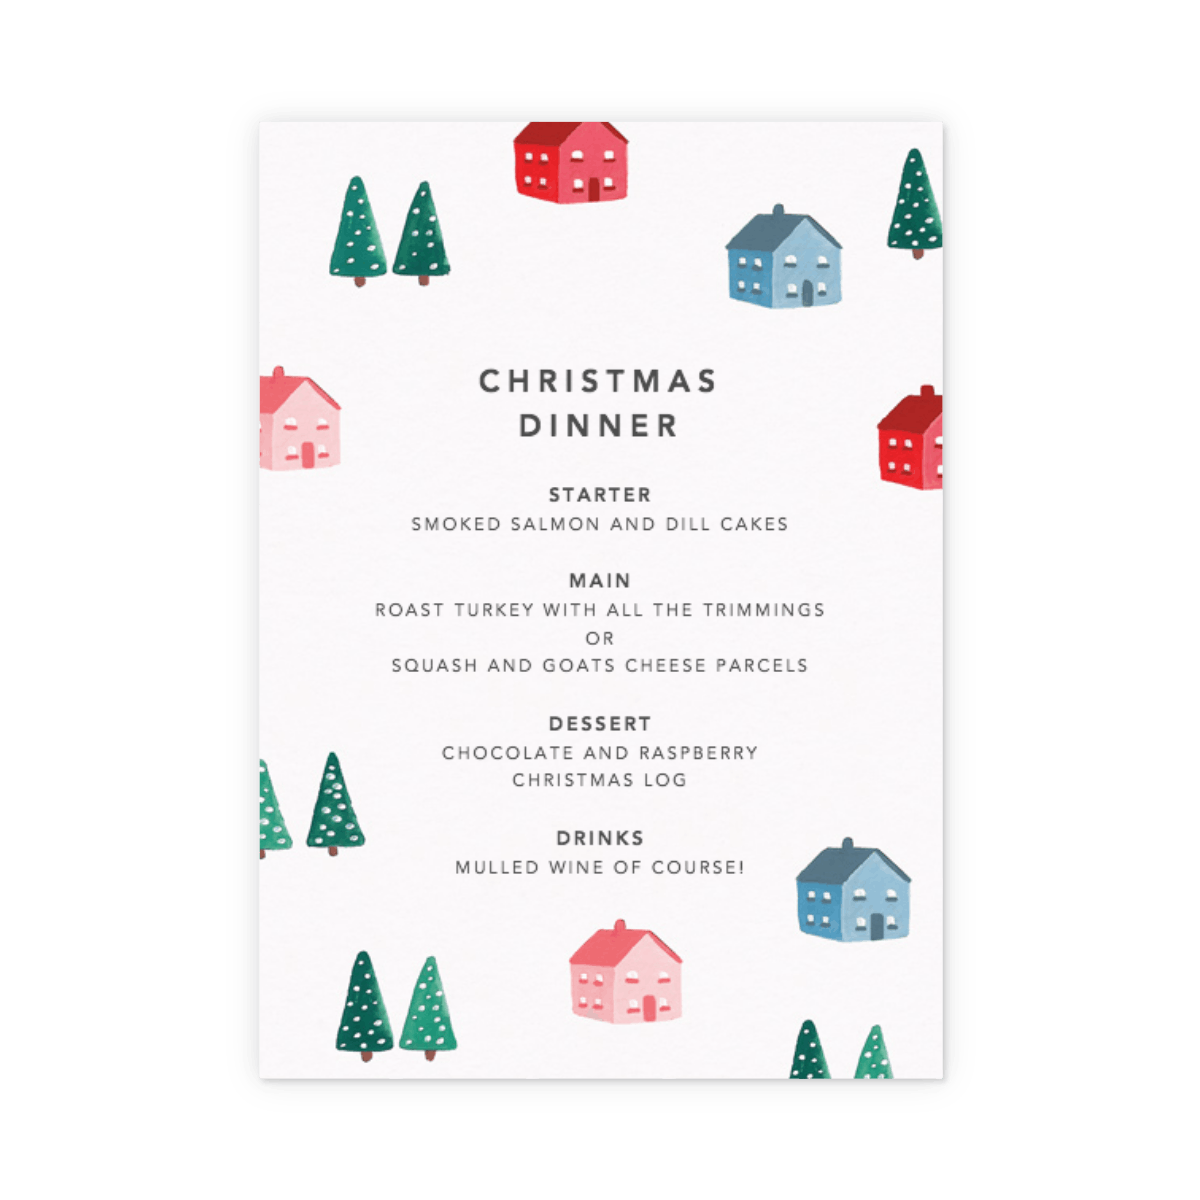 Https%3a%2f%2fwww.papier.com%2fproduct image%2f25778%2f4%2fchristmas town 6437 front 1553548402.png?ixlib=rb 1.1